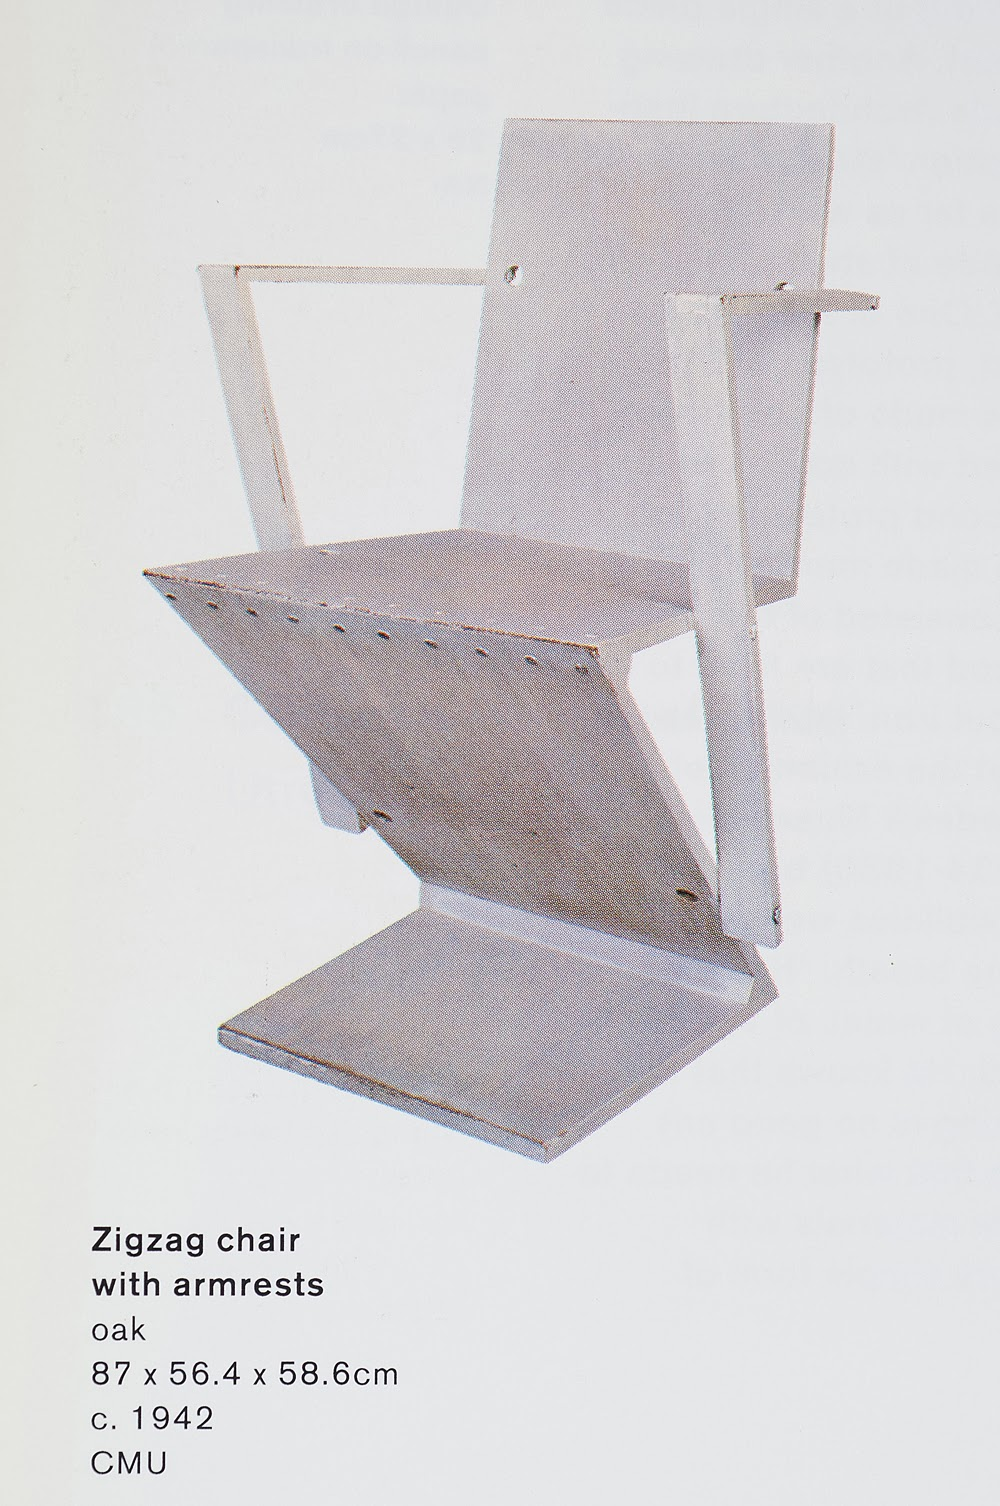 During The 1930u0027s And 40u0027s Rietveld Devised A Number Of Variations On The Zig  Zag Chair. Some Had Arm Rests And Holes In The Back, Some Were Different In  ...